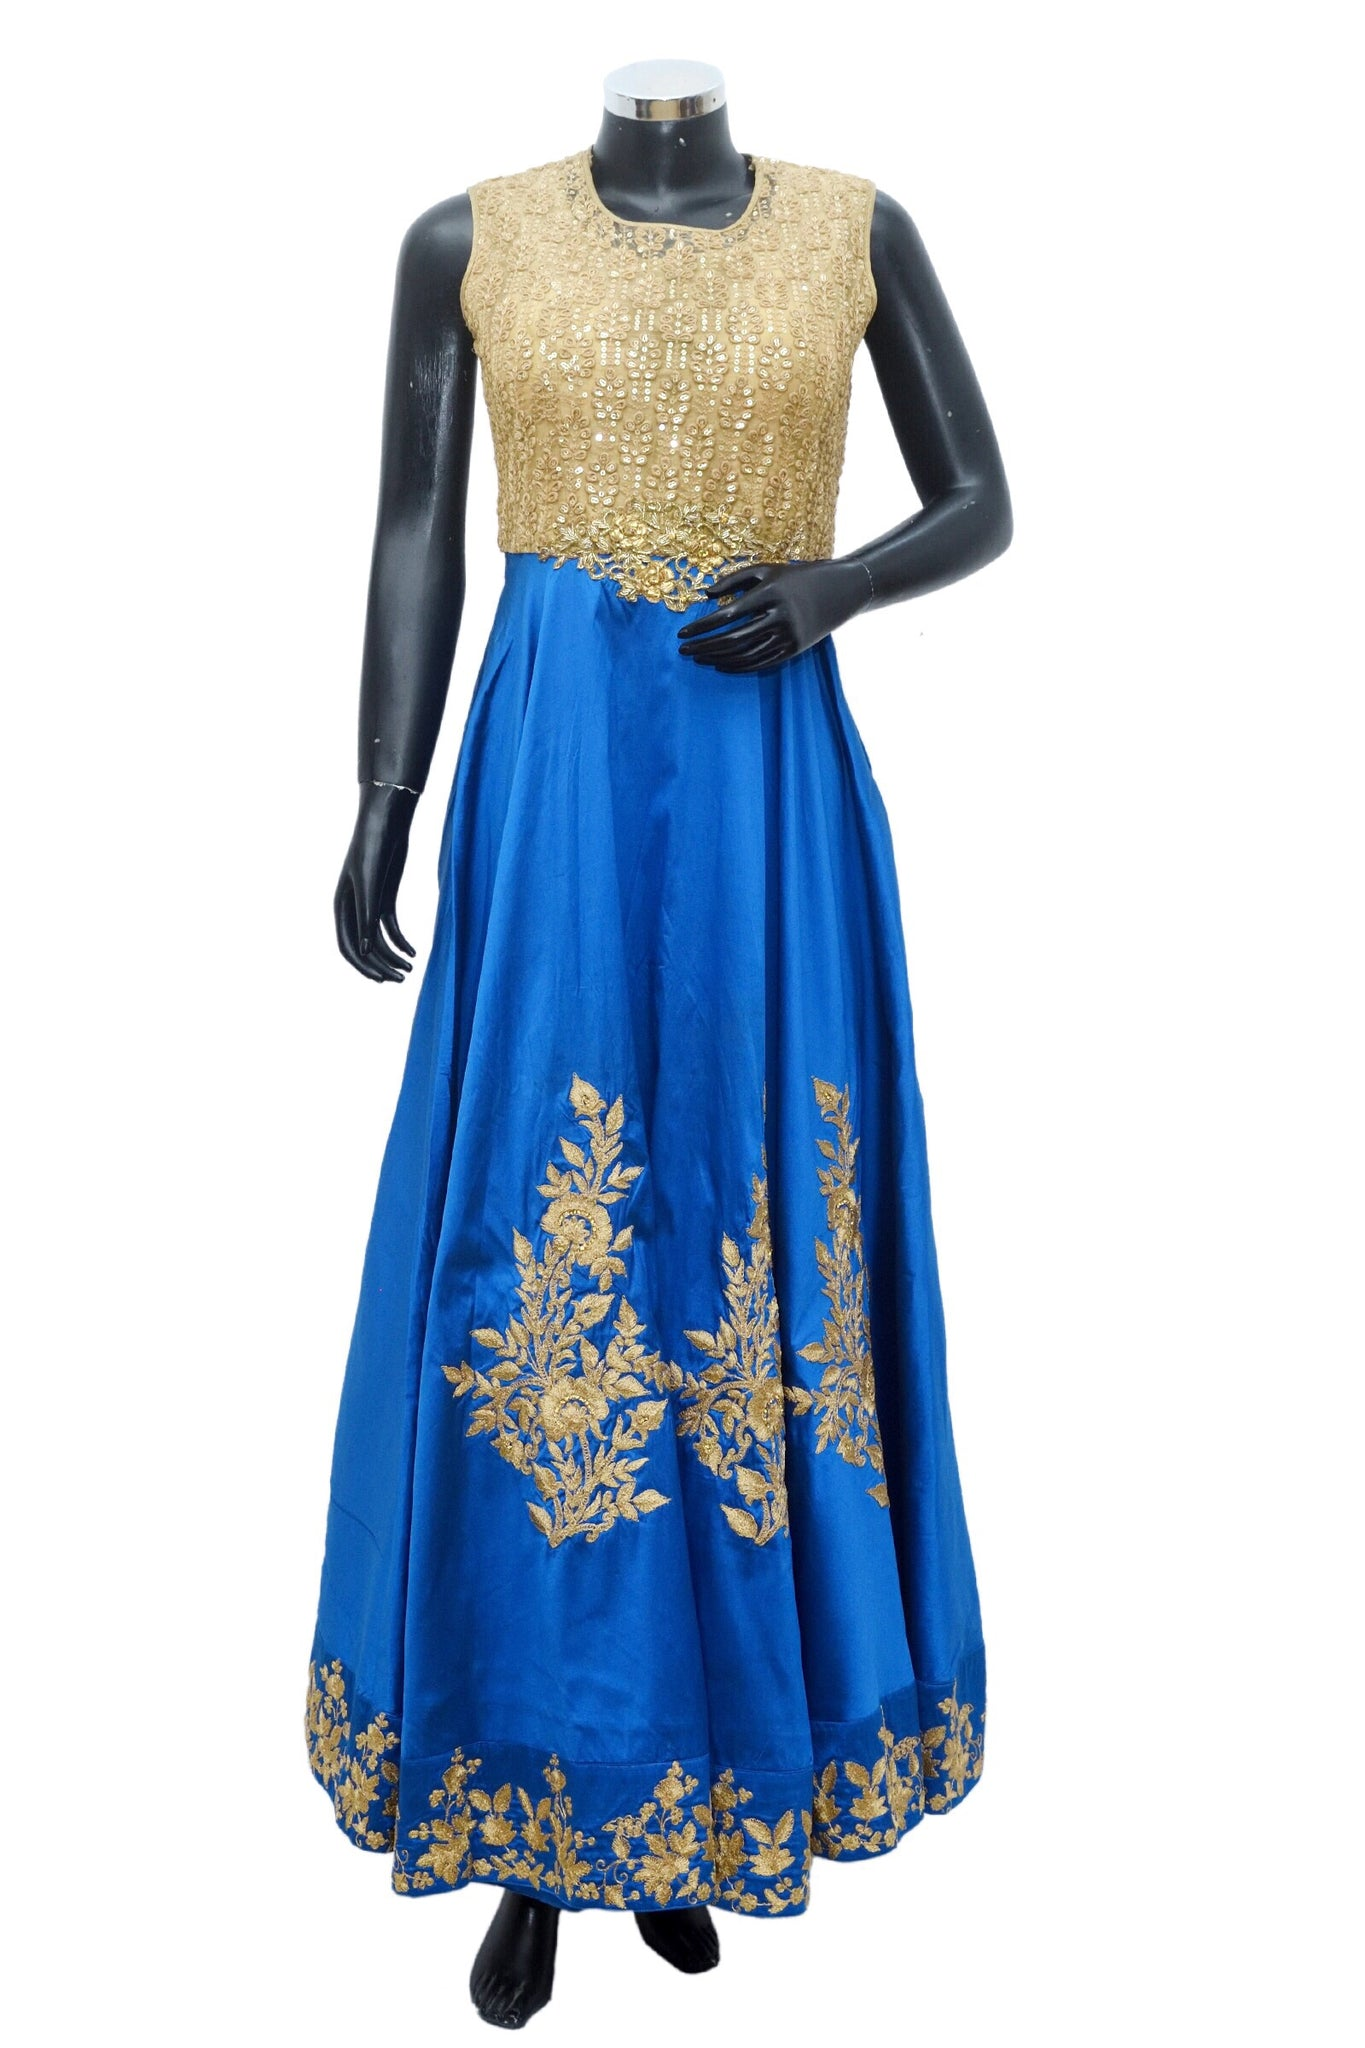 Blue and gold gown #fdn886-631